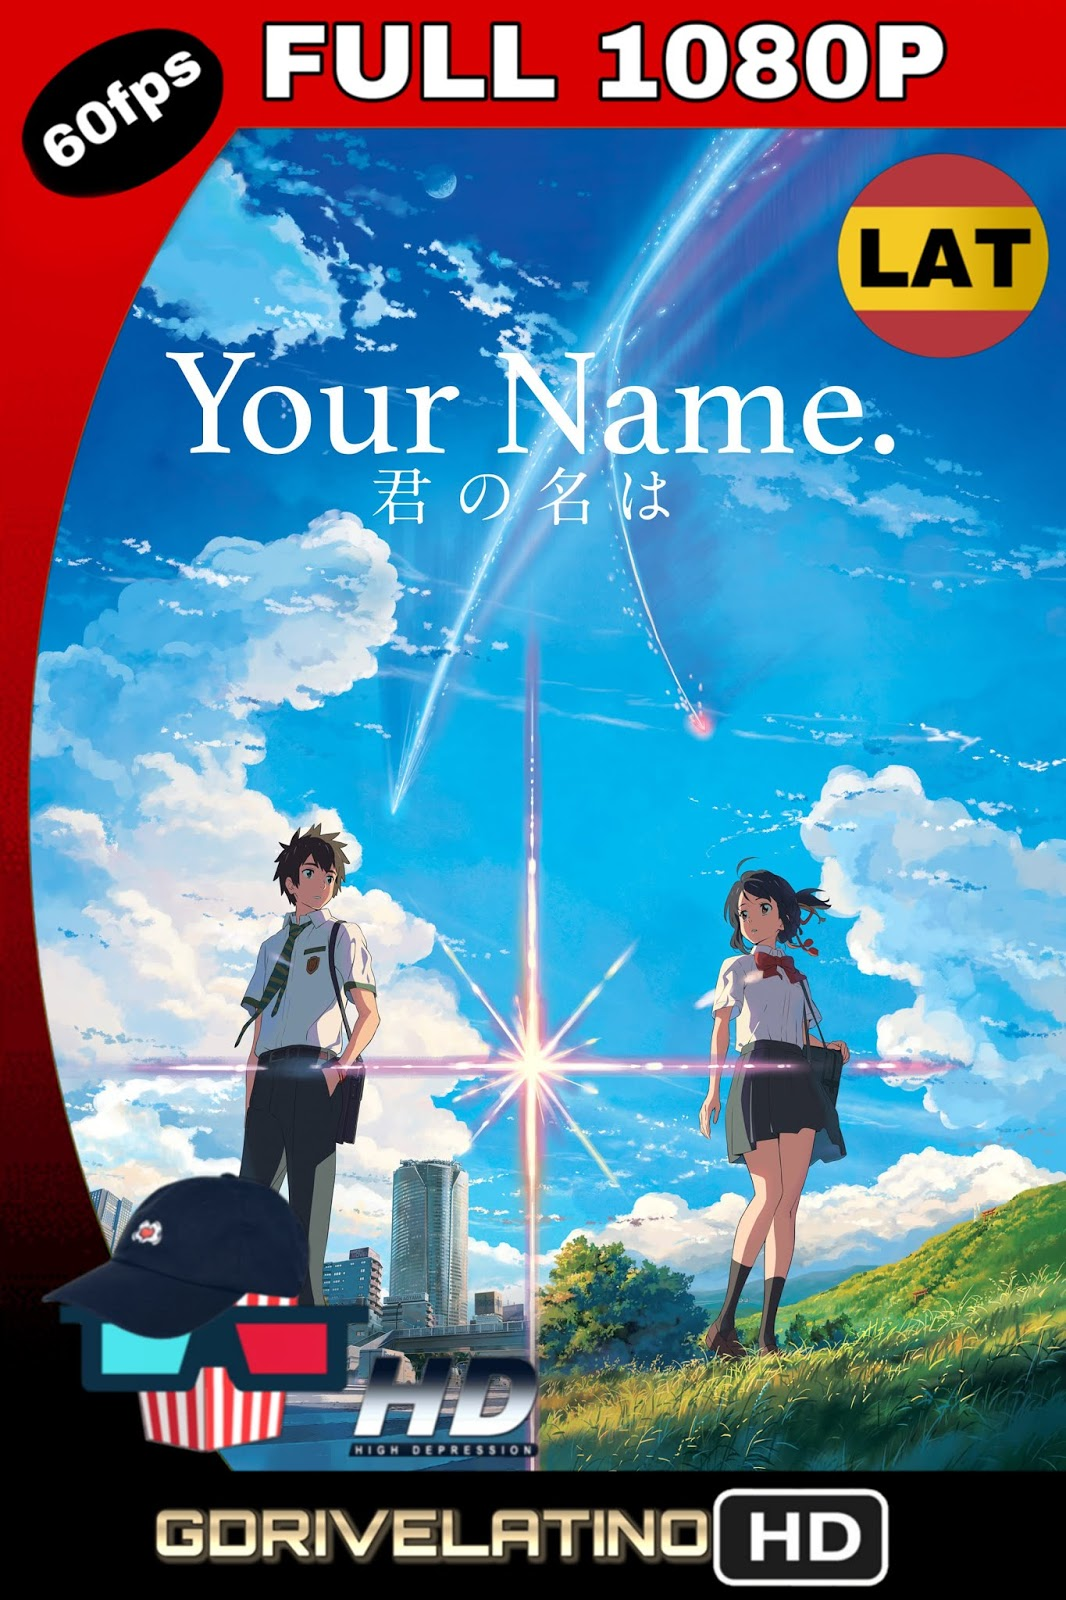 Your Name. (2016) BDRip FULL 1080p (60fps) (Latino – Japonés) MKV